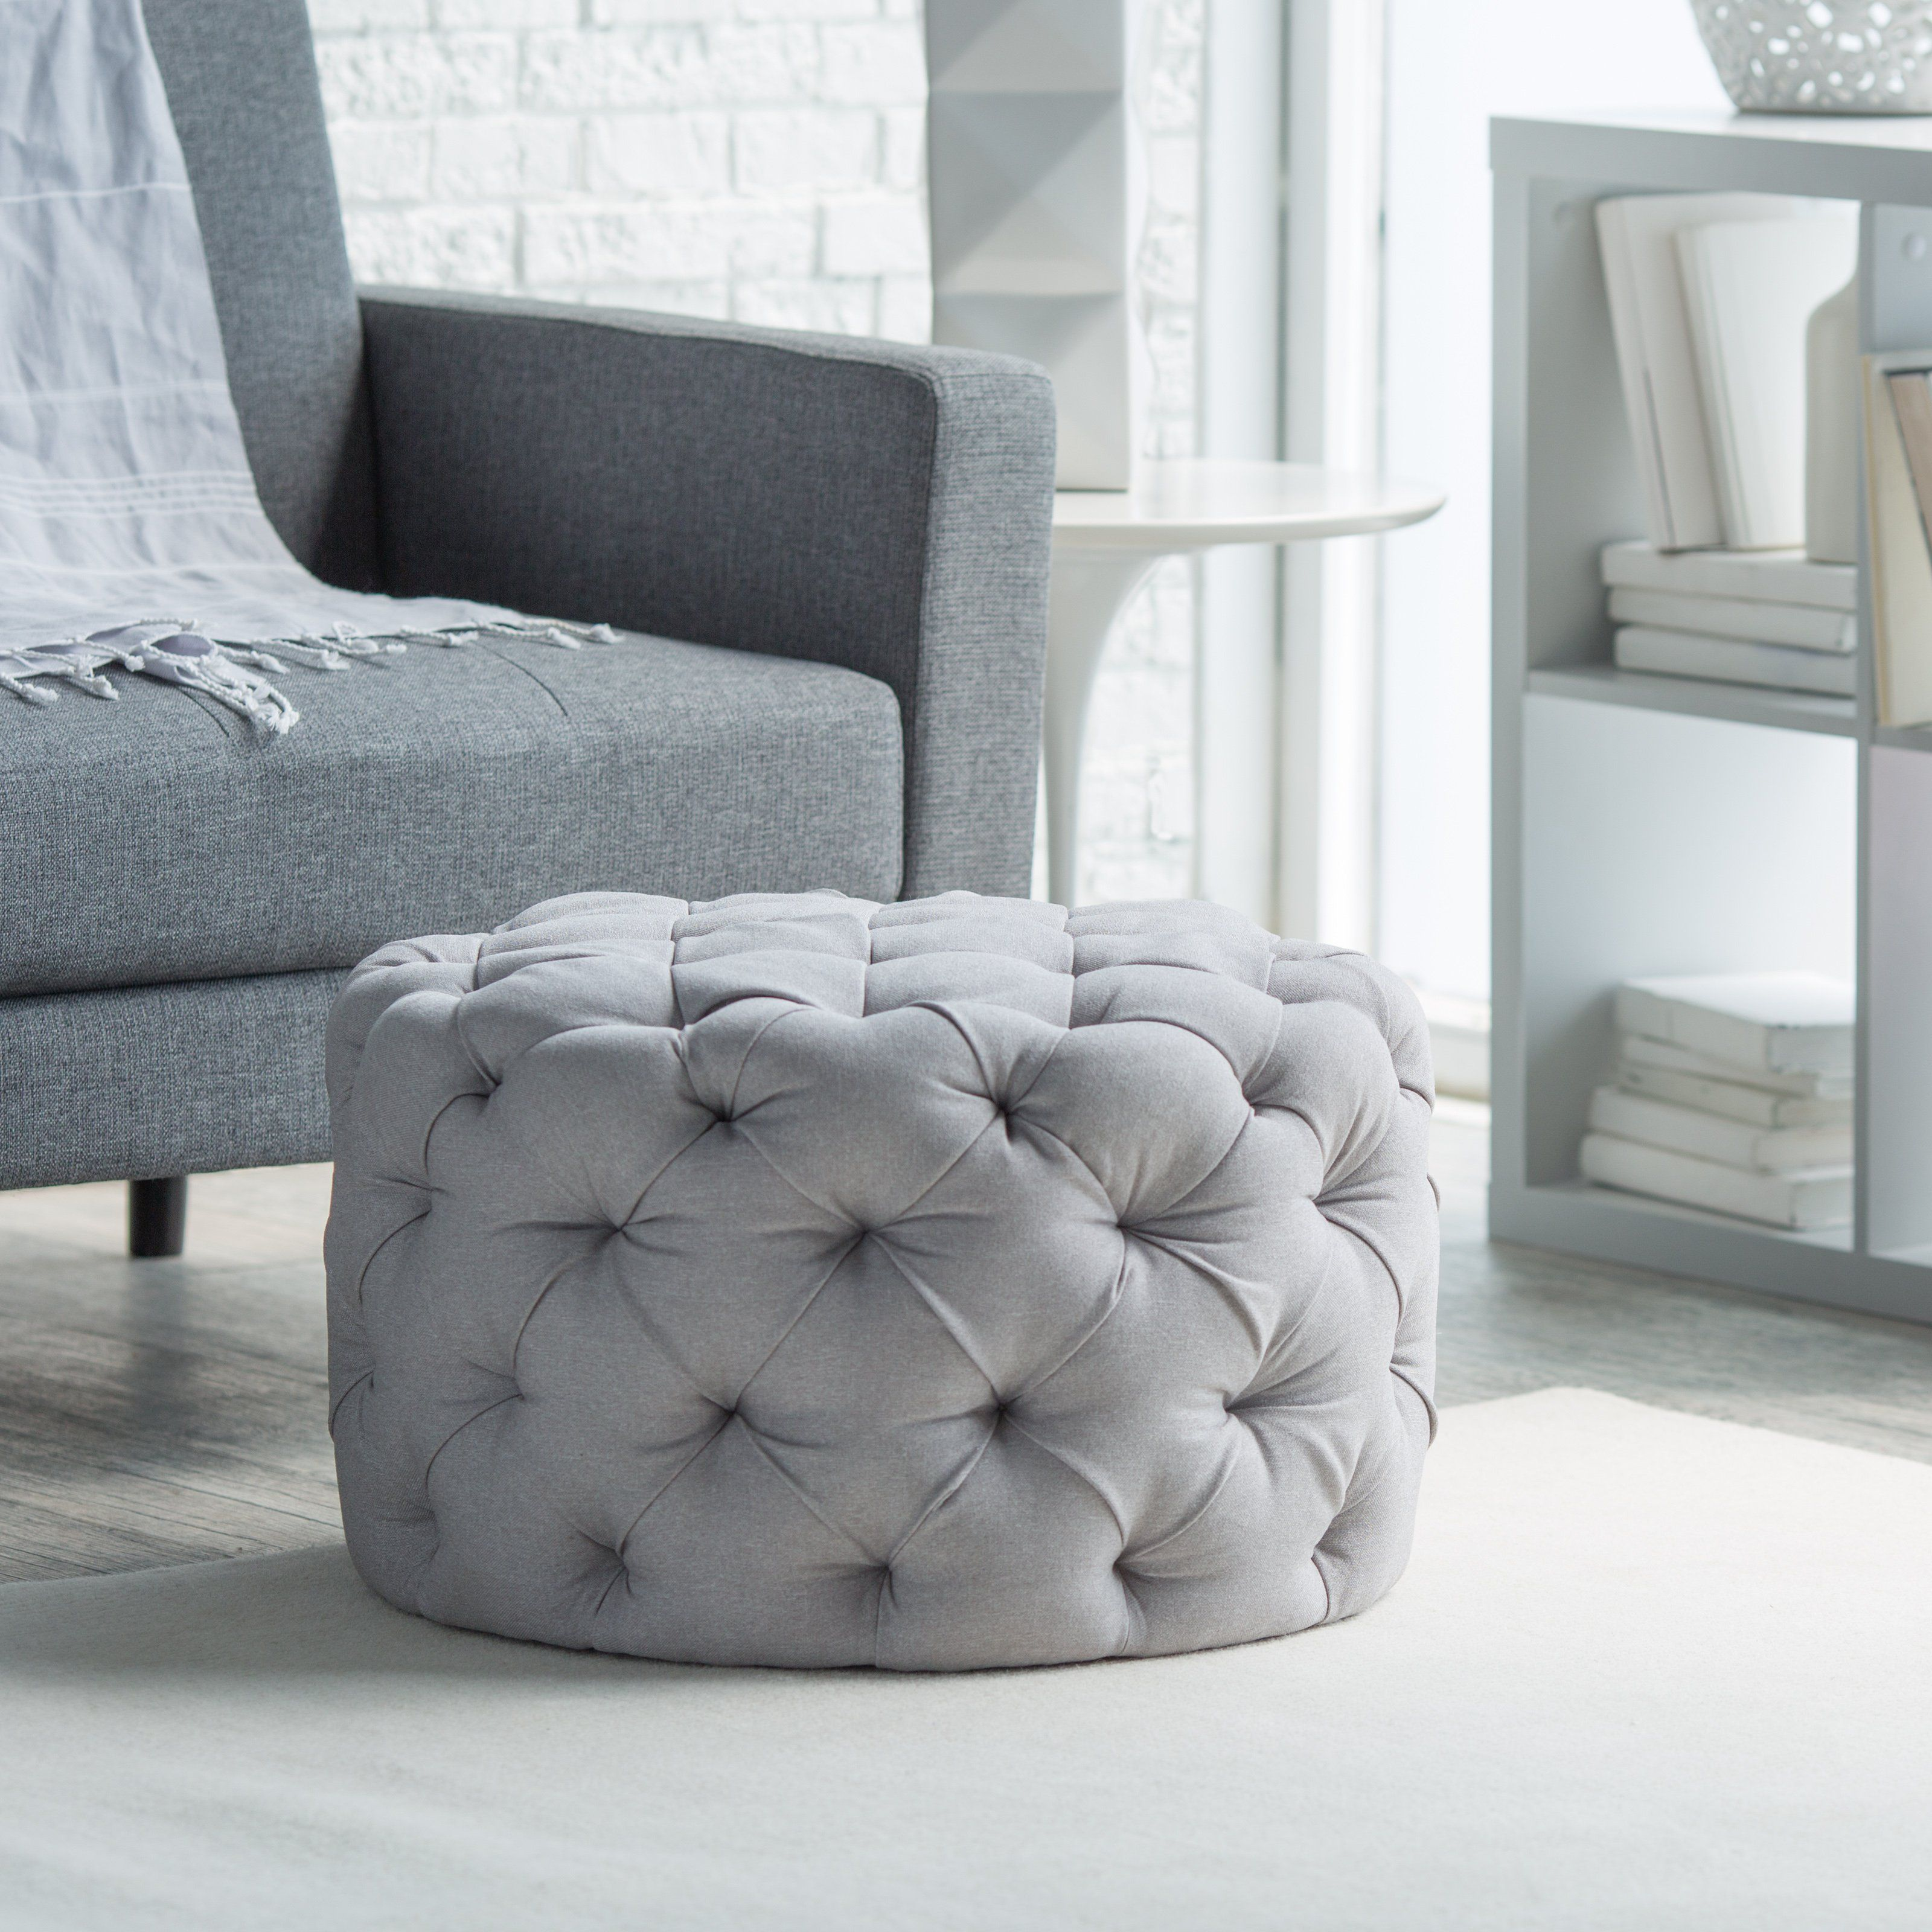 Belham Living Allover Tufted Round Ottoman Grey An all around